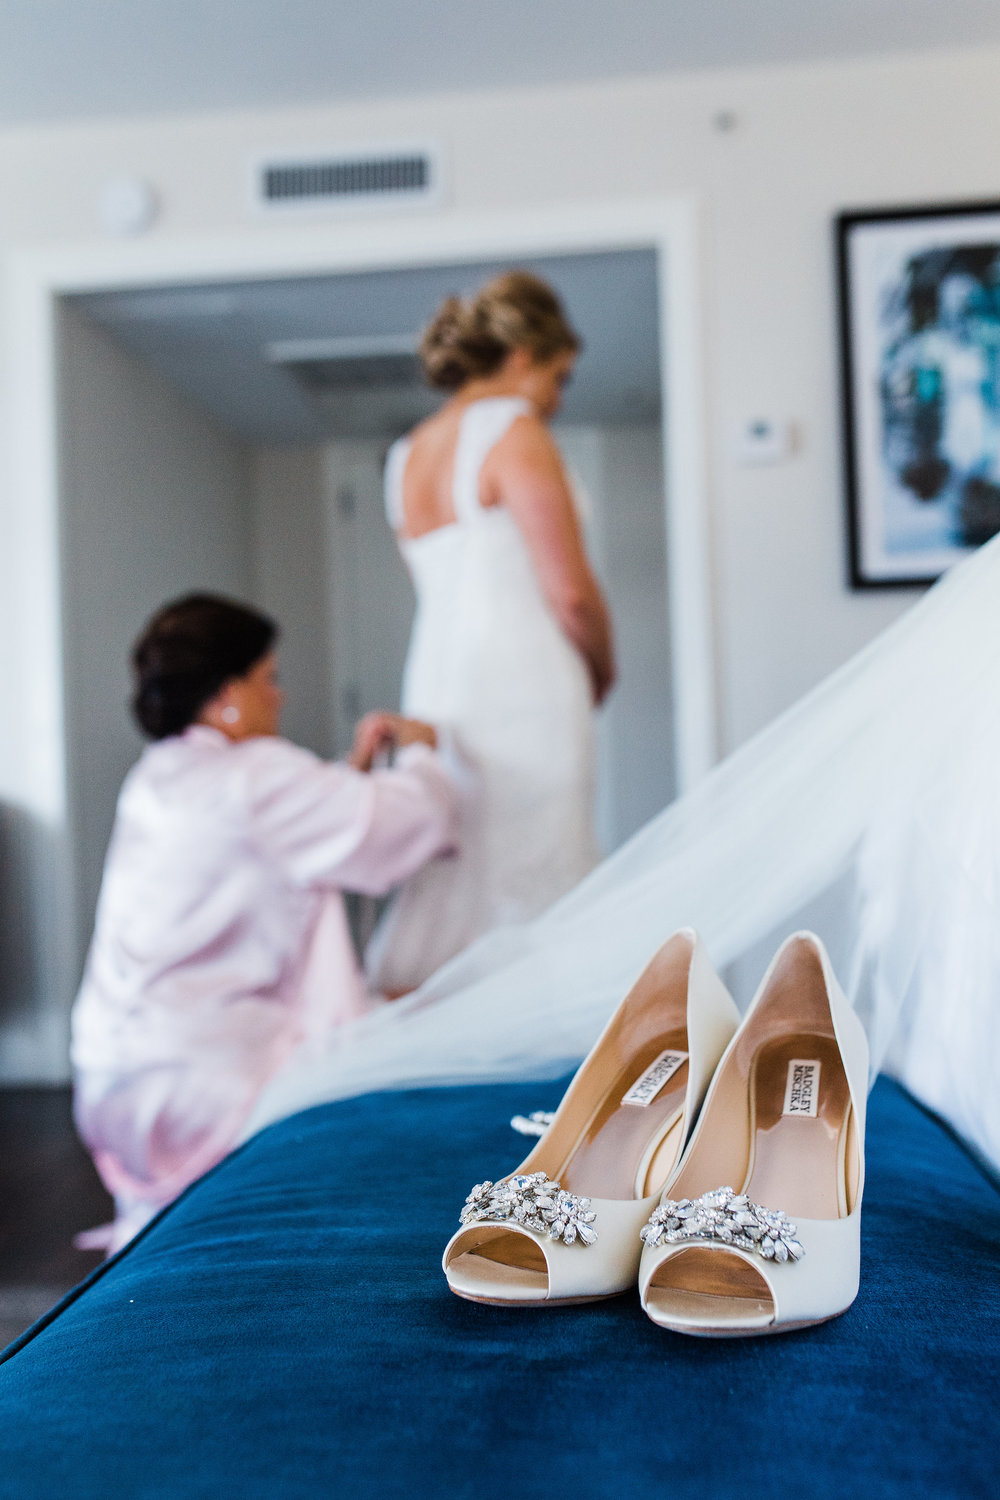 savannah-bridal-shop-i-and-b-bride-meghan-rosamund-gown-by-maggie-sottero-st-johns-cathedral-wedding-apt-b-photography-7.JPG